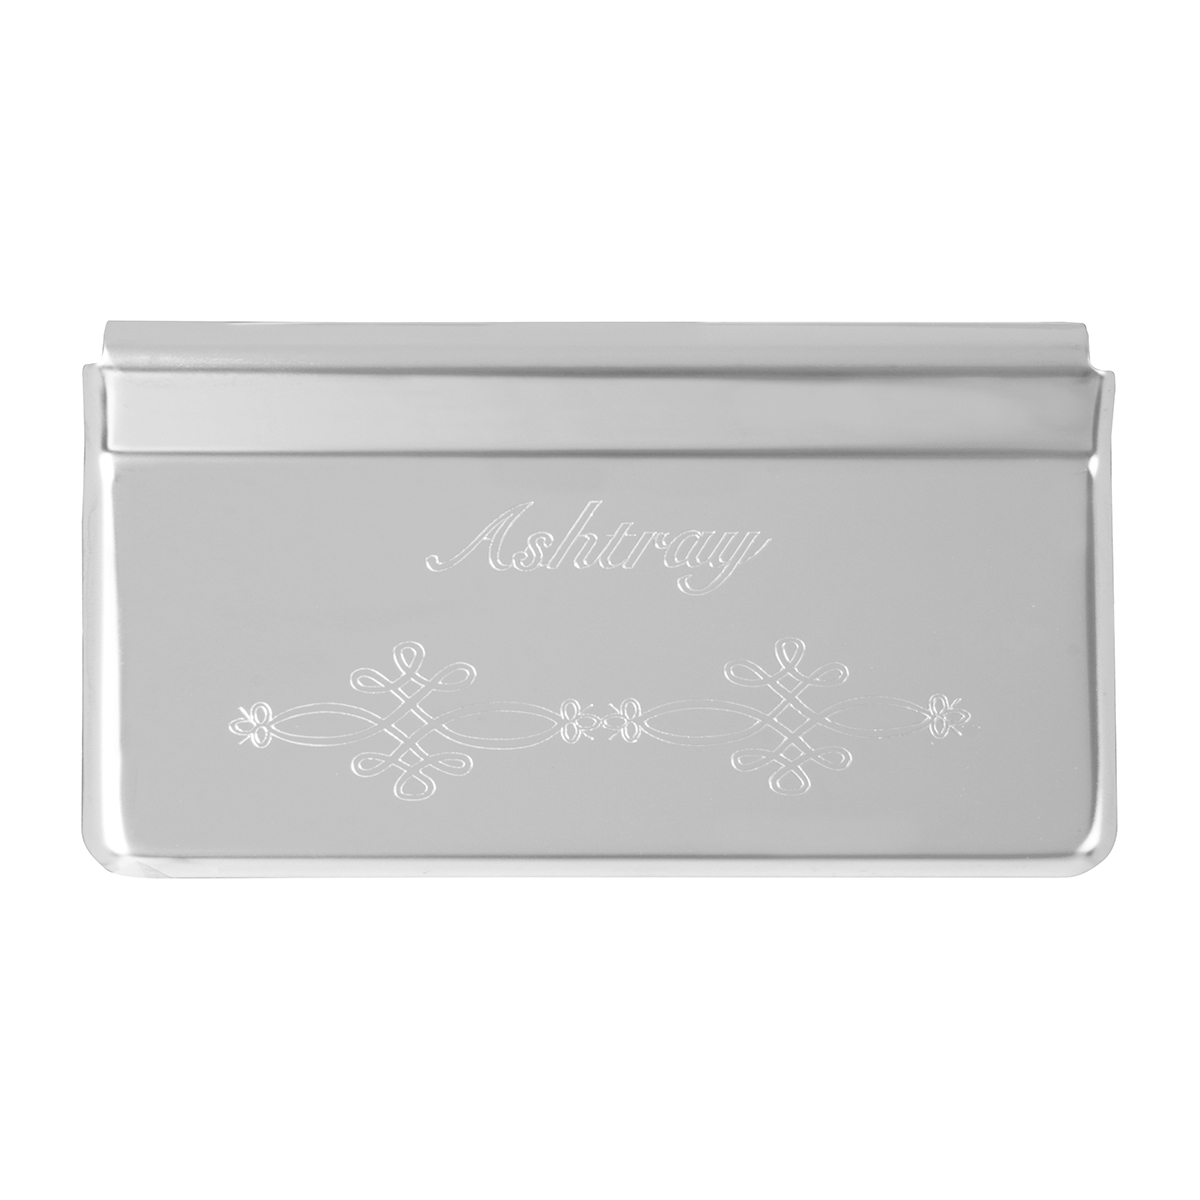 68320 Ash Tray Cover for Peterbilt 379 2000 to 2004